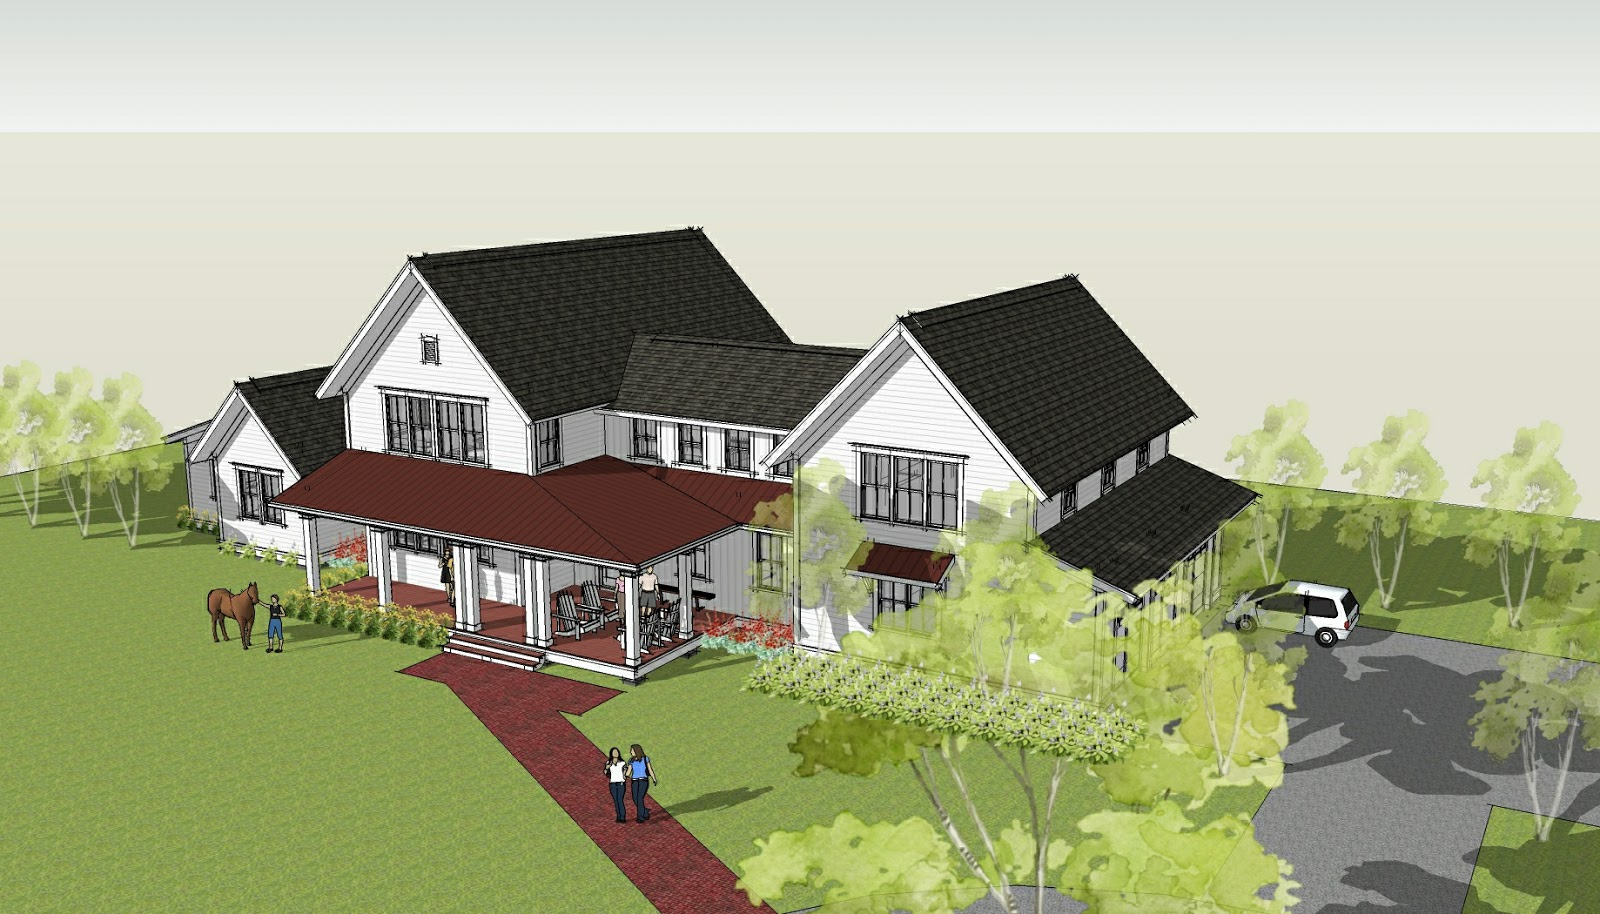 Ron brenner architects new modern farmhouse design completed for New farmhouse plans